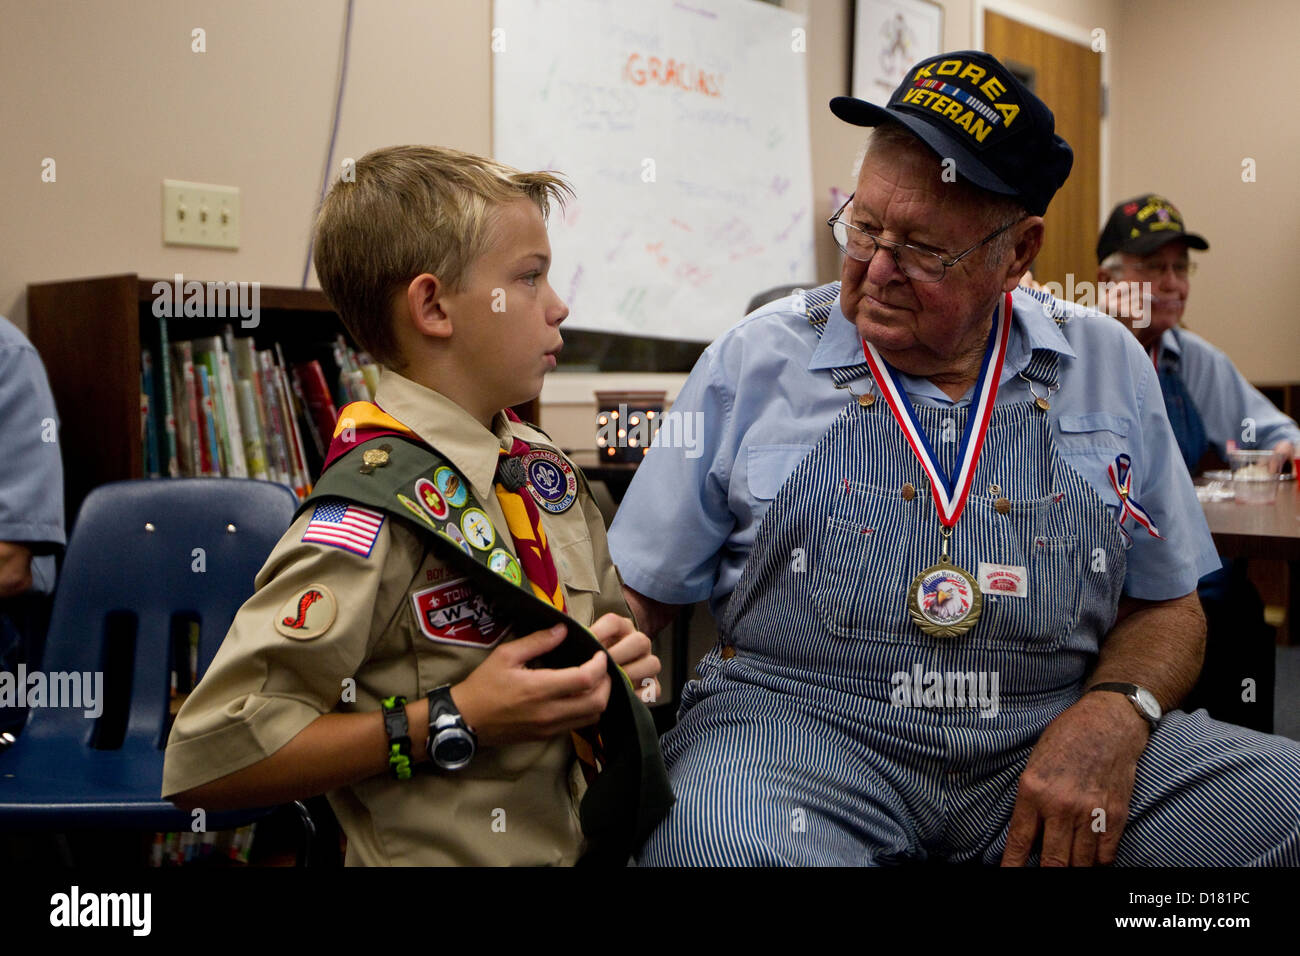 13 year old boy scout, shows elderly white male veteran, his merit badges during a Veteran's Day celebration - Stock Image